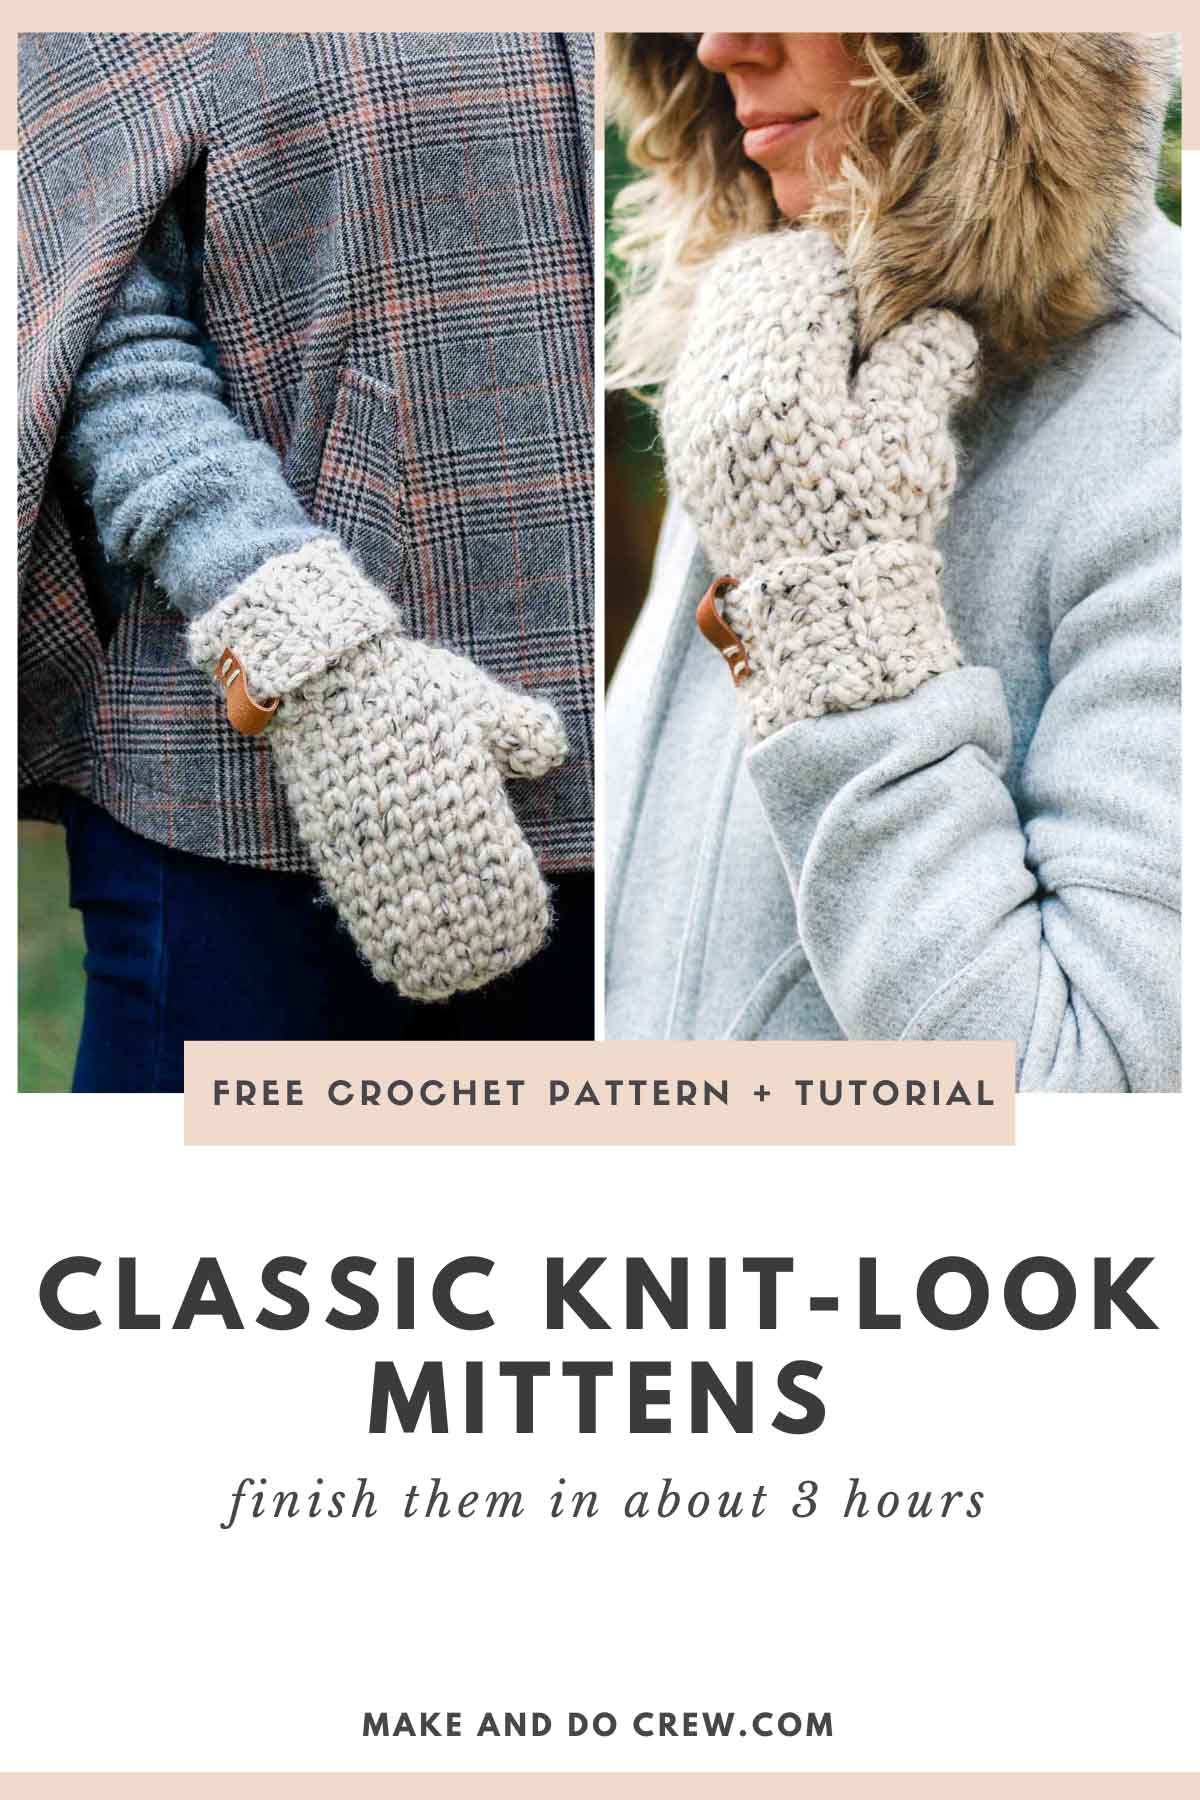 Grid of images showing a chunky pair of crochet mittens that look knit because they're made with the crochet waistcoat stitch.